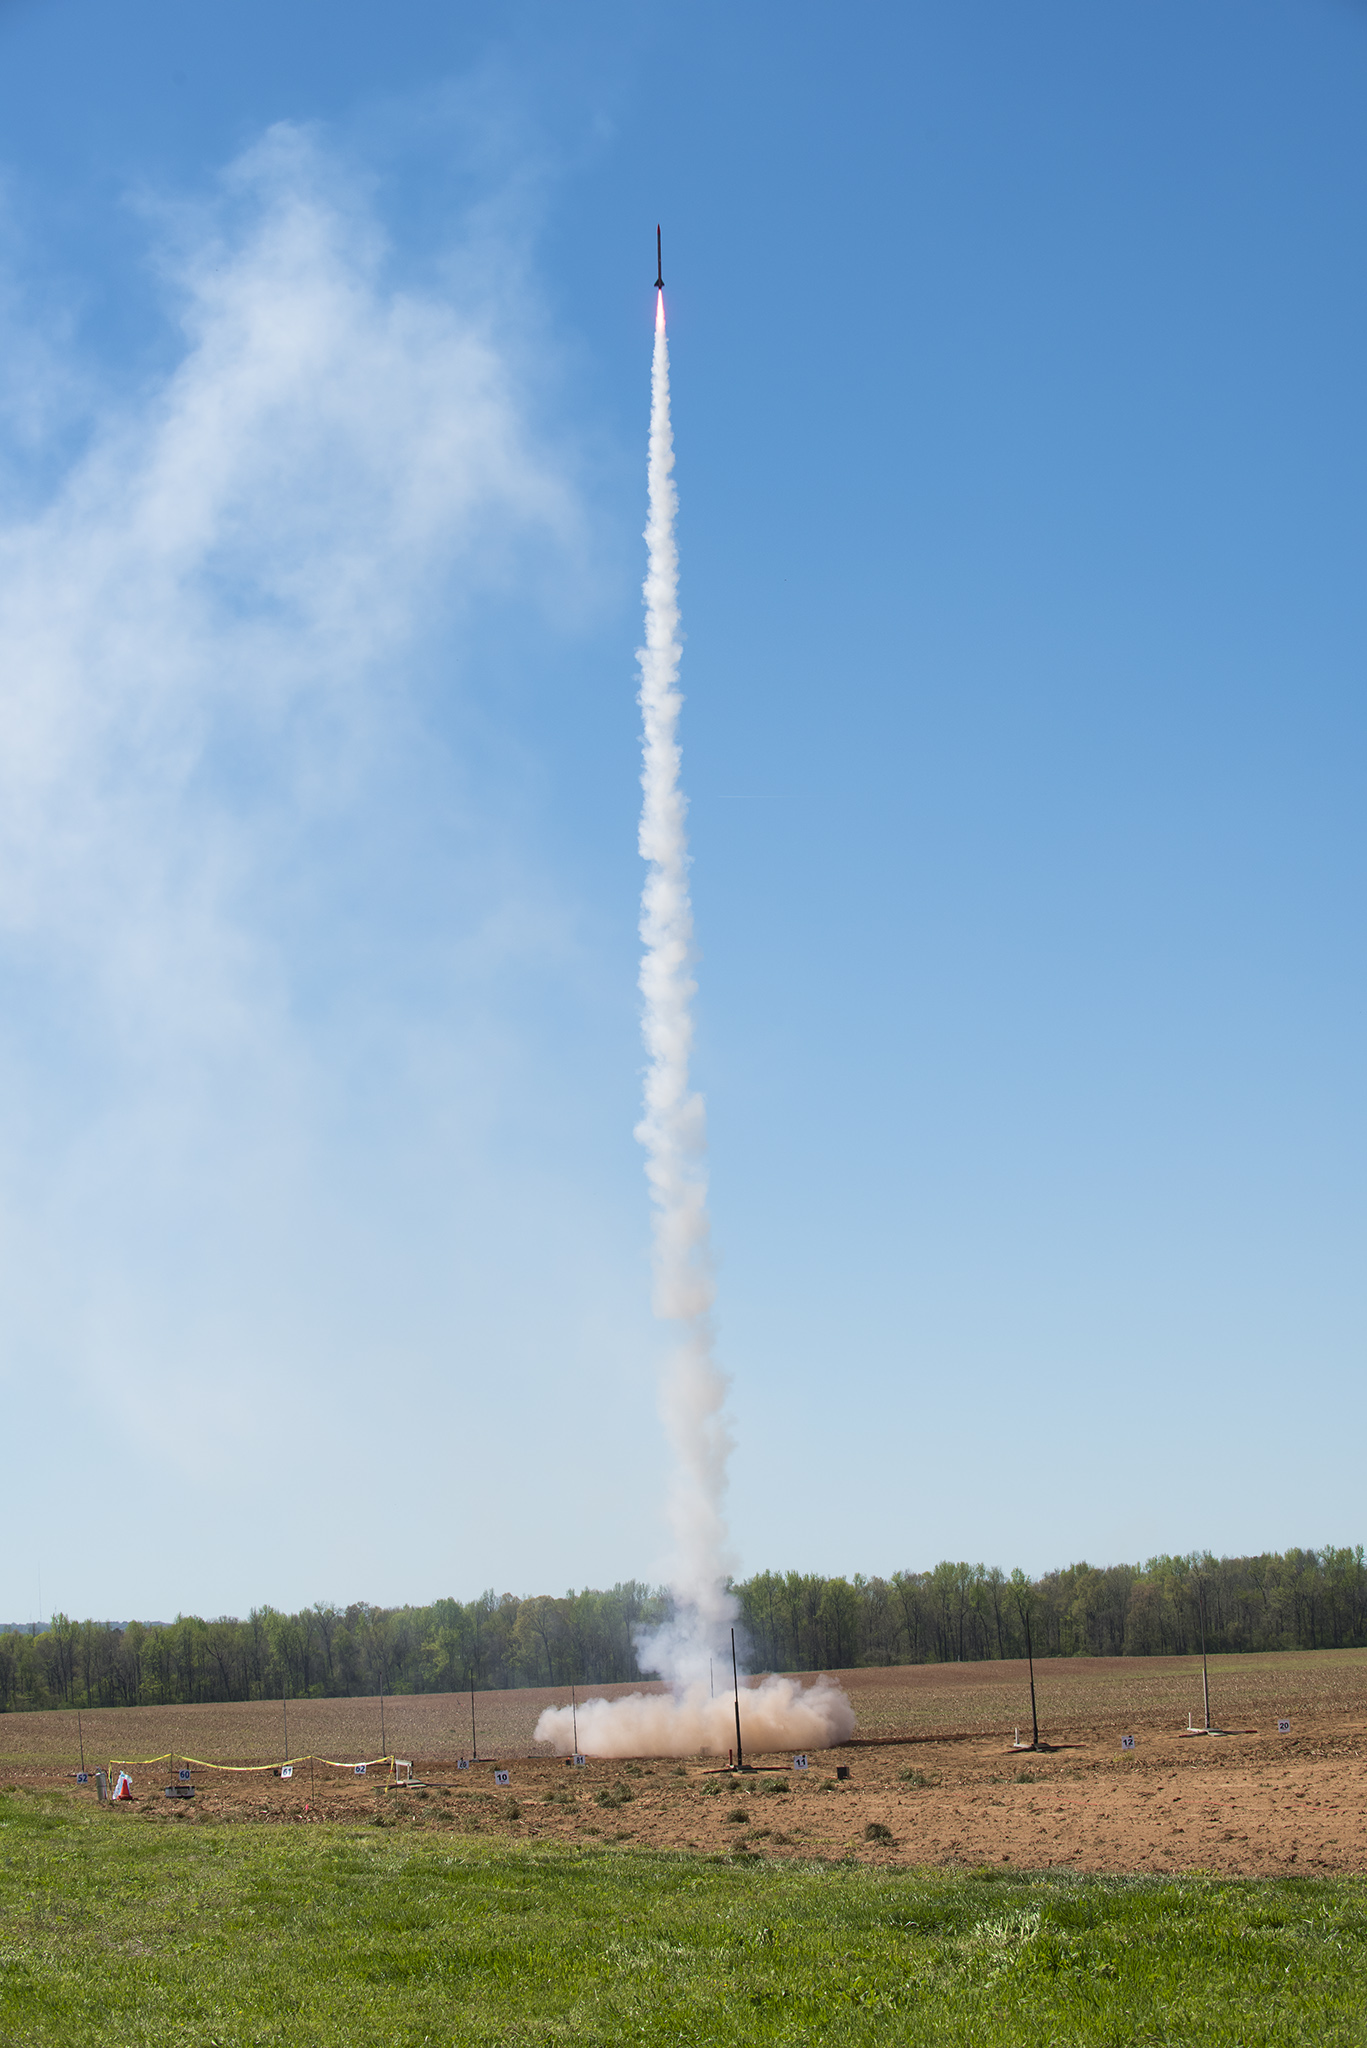 Nasa's Student Launch competition sends high performance rockets soaring a mile above an Alabama farm.  Credit: Nasa / MSFC / Charles Beason